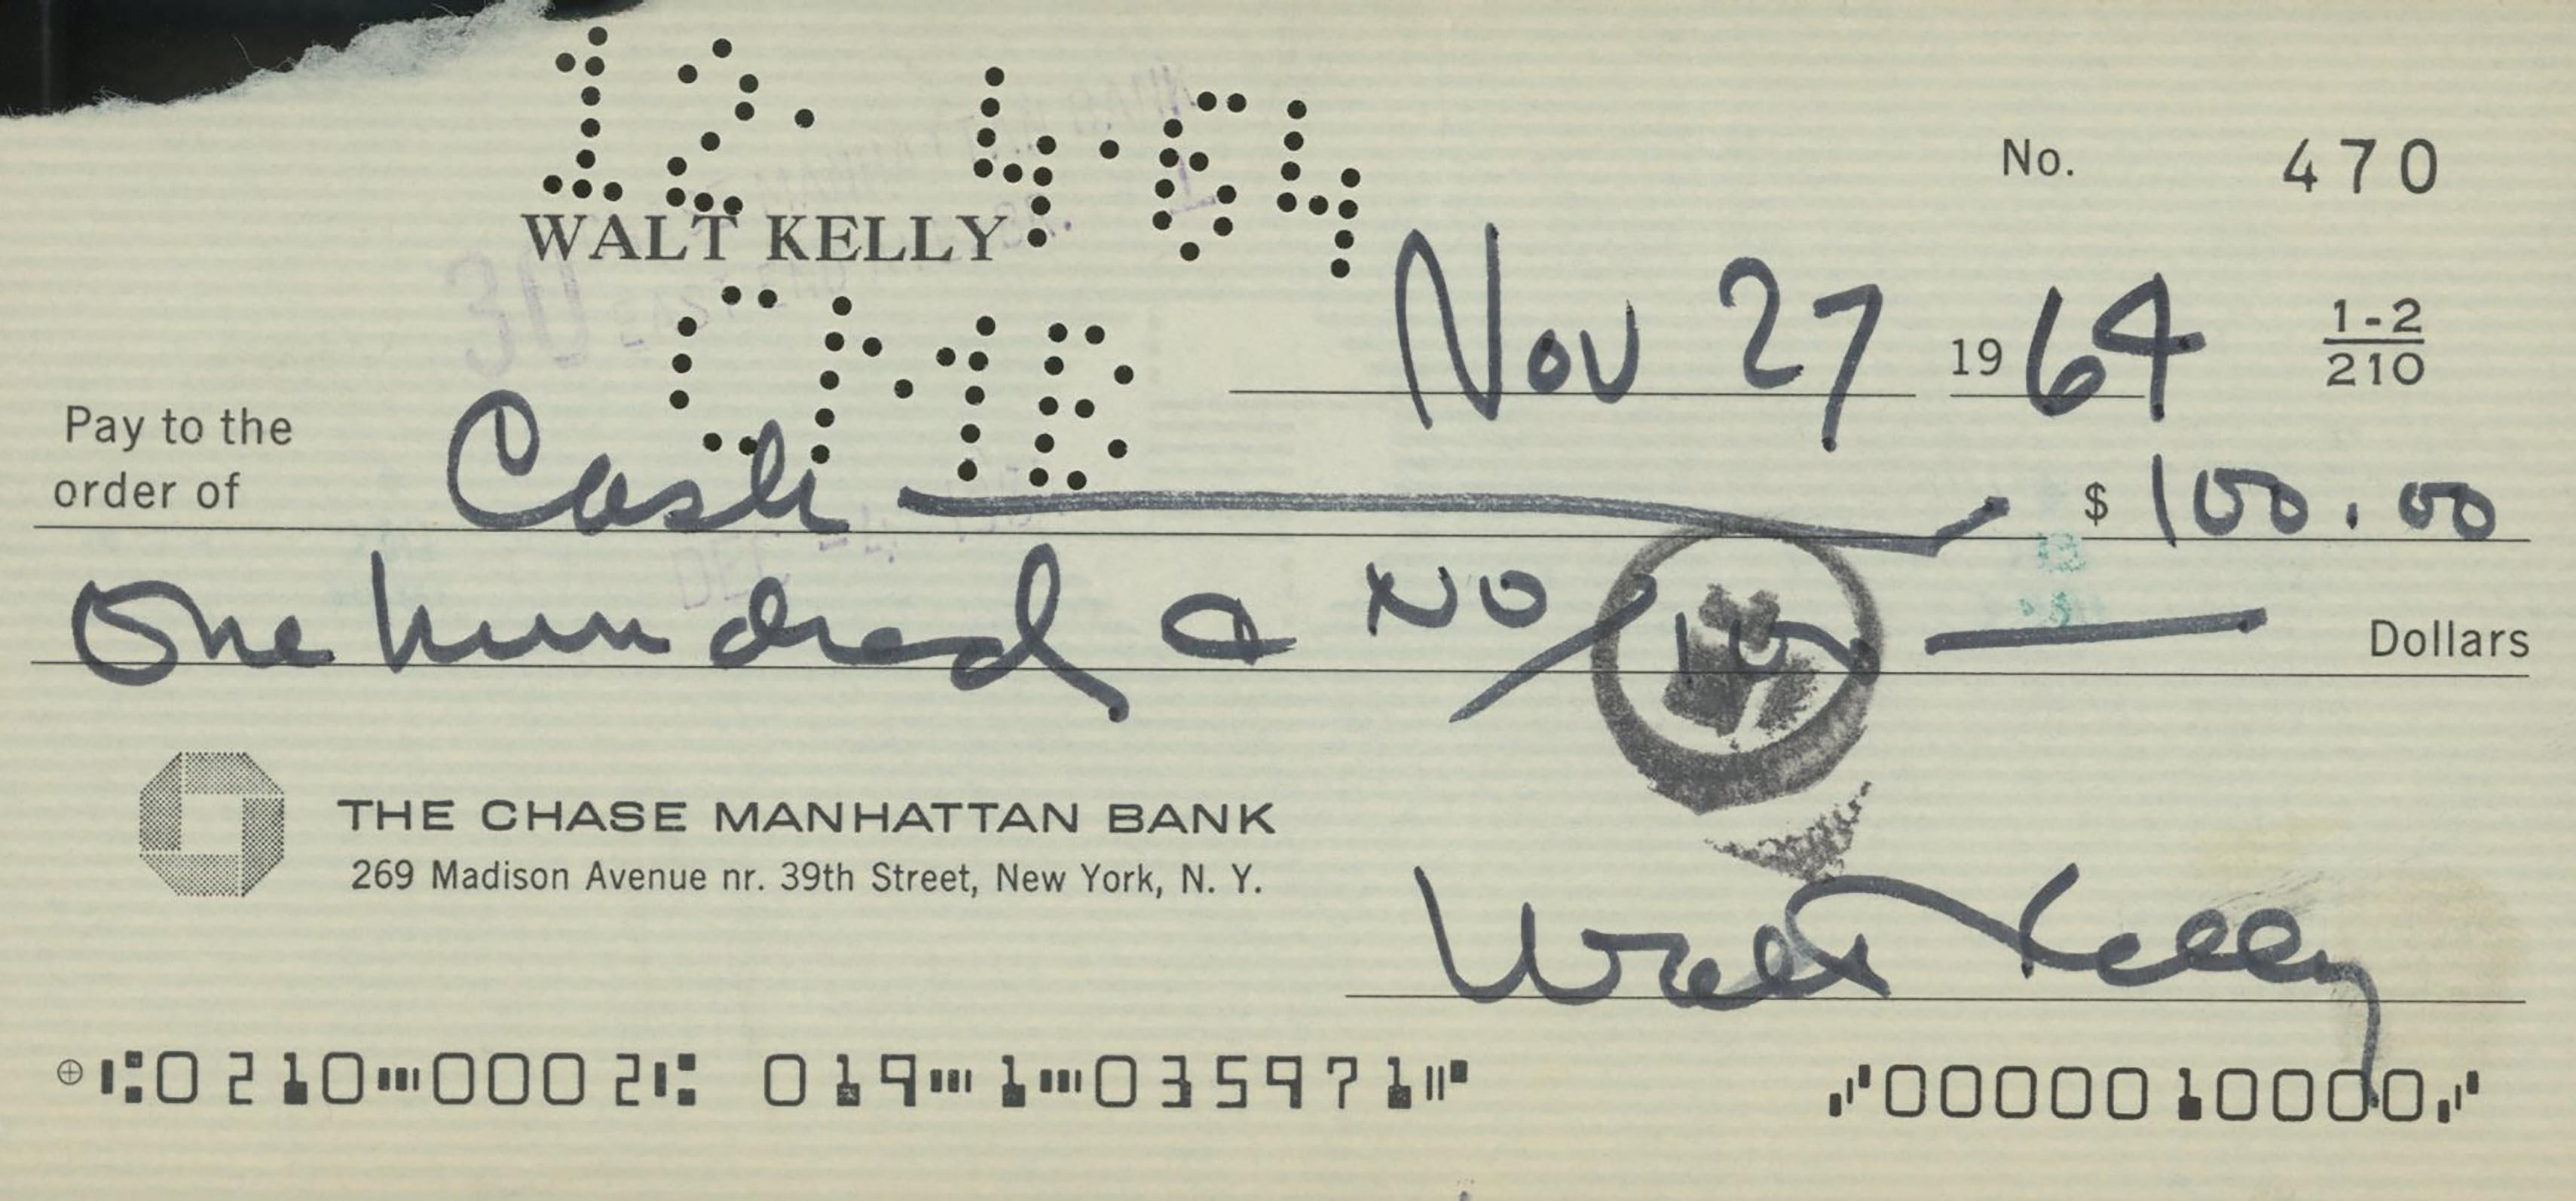 Walt Kelly signed check